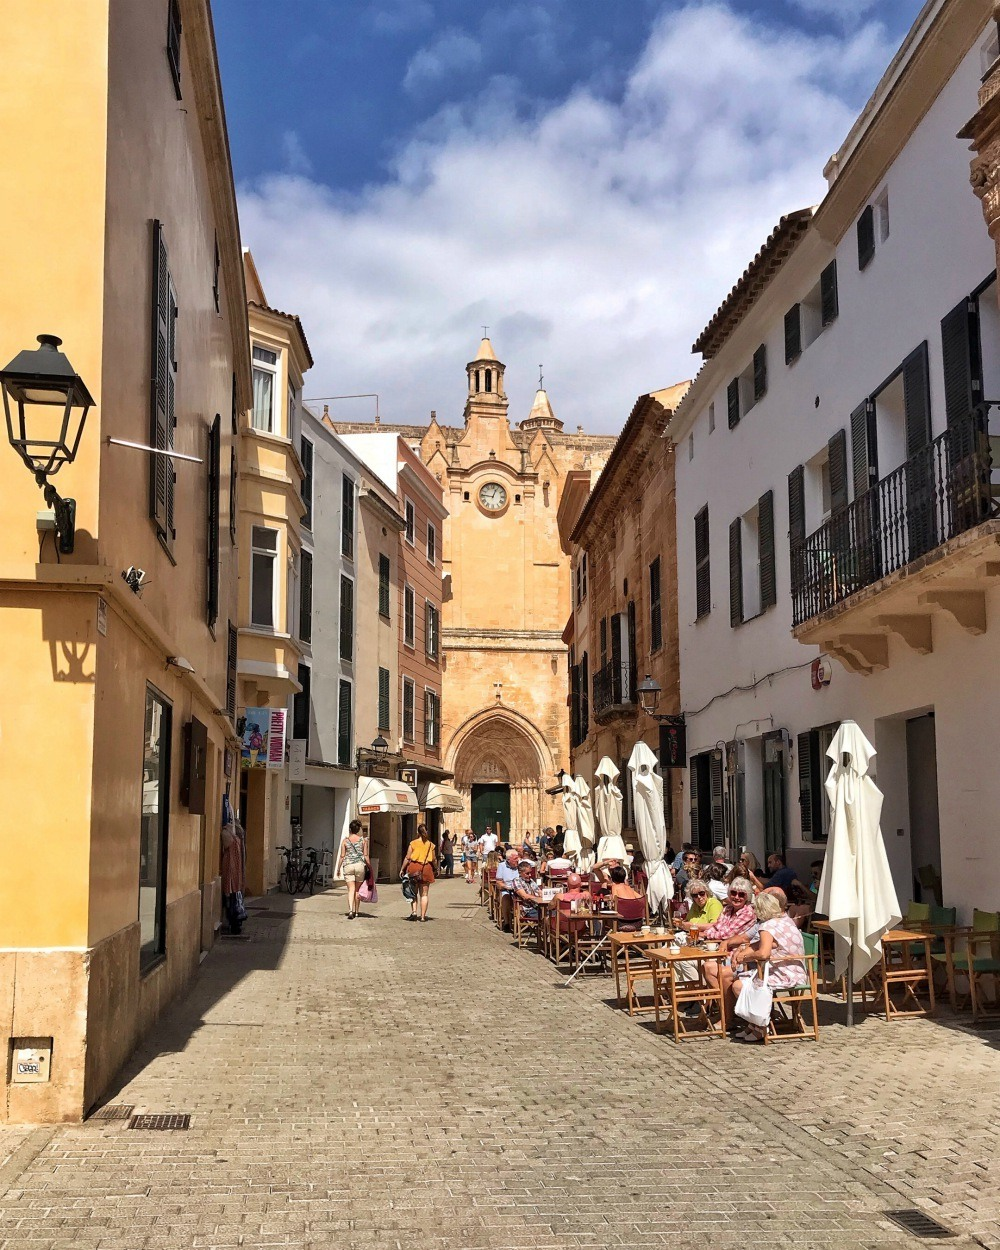 Old Streets in Ciutadella Menorca Spain Photo Heatheronhertravels.com